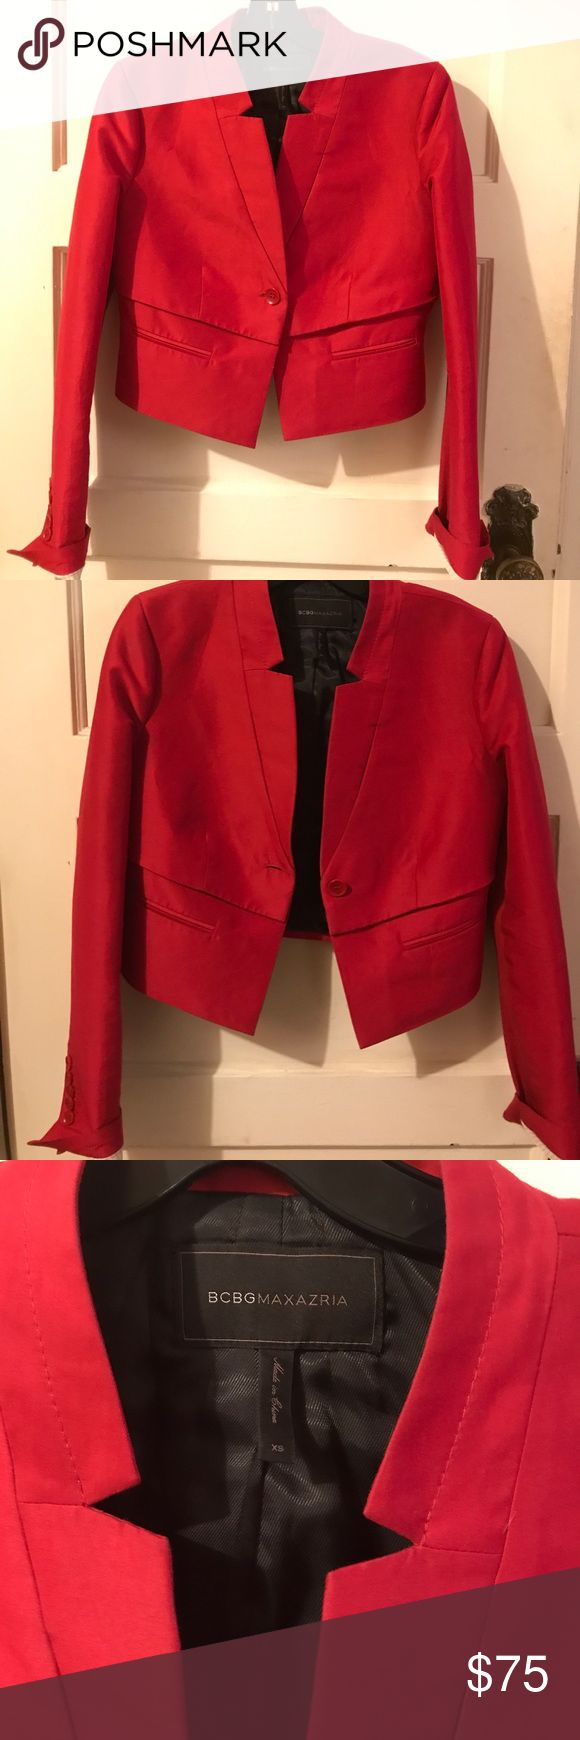 Structured Red BCBG Max Azria Cropped Blazer Gorgeous blazer. Cropped and structured. Offers welcome, pictures of this on available upon request. BCBGMaxAzria Jackets & Coats Blazers